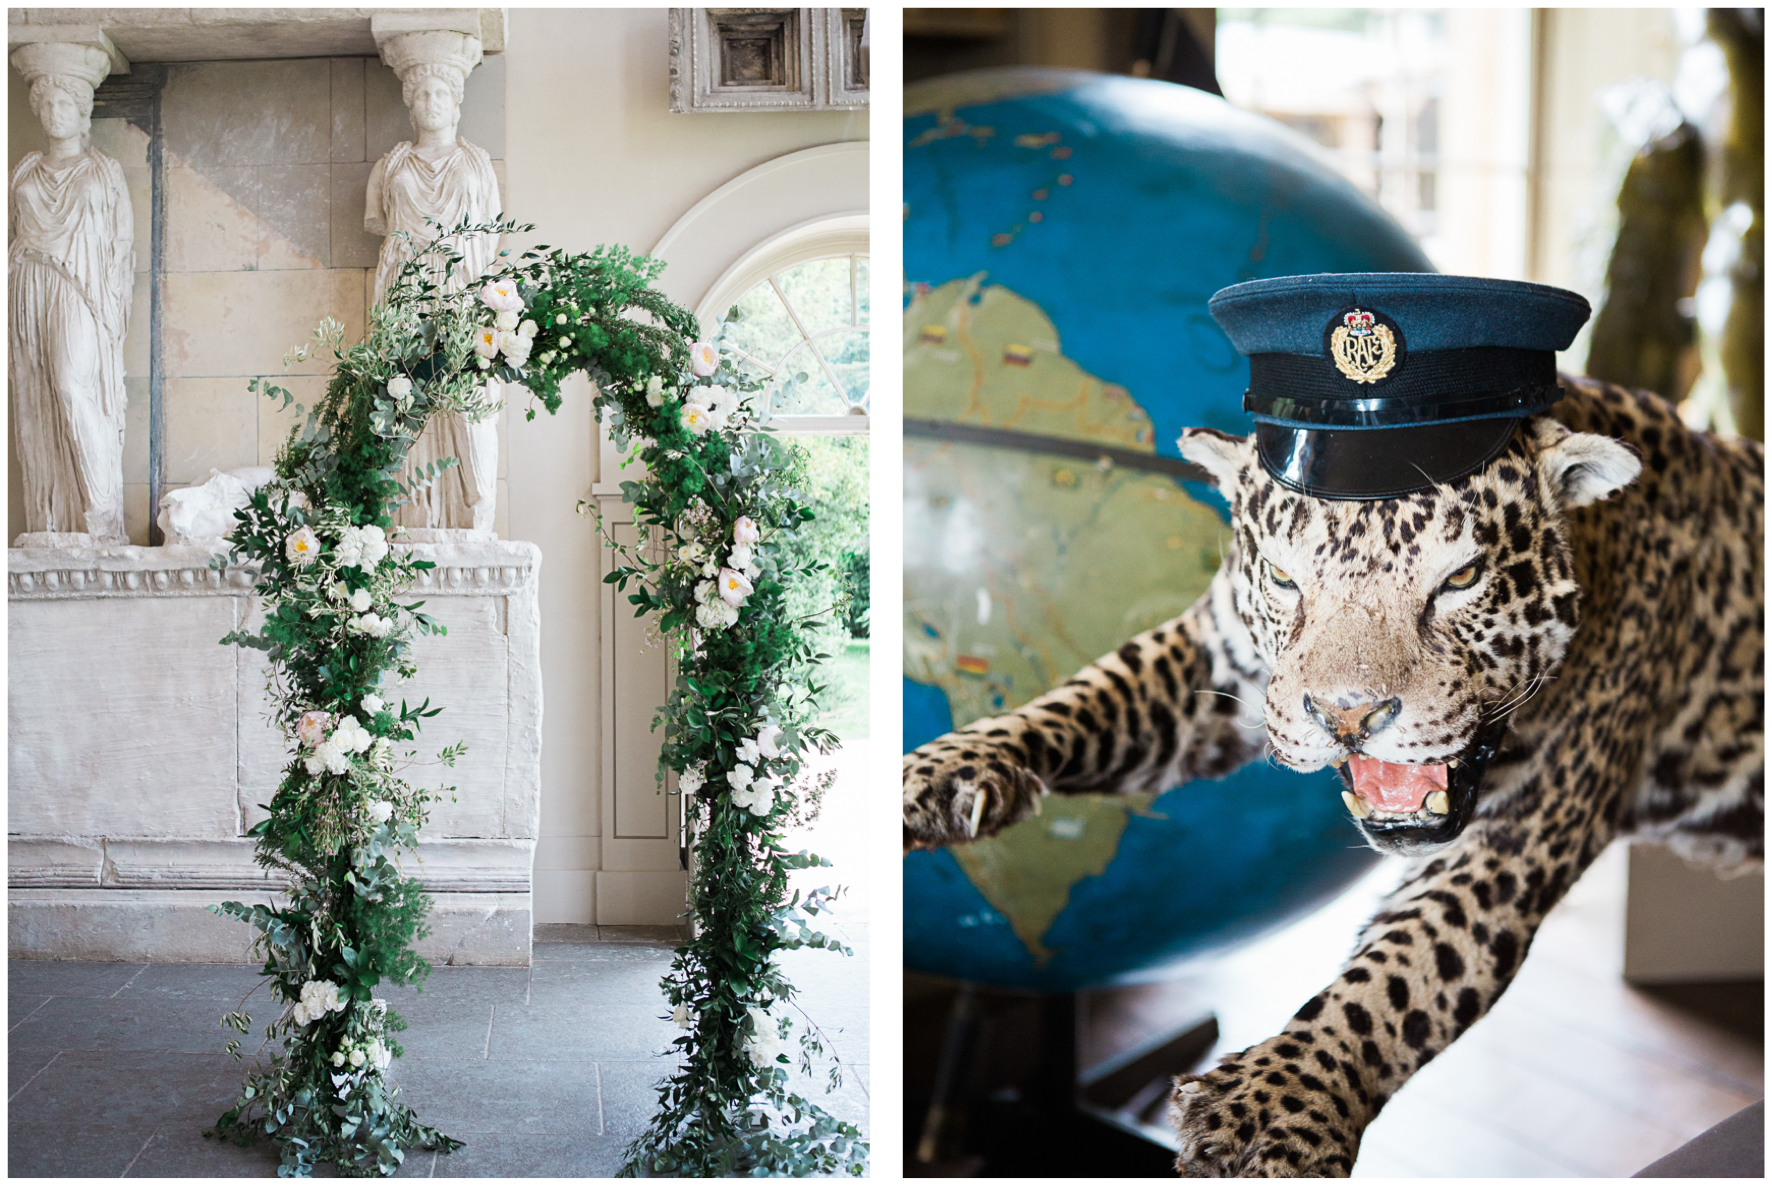 Lucy Davenport Photography, Aynhoe Park, wedding, wedding venue, floral arch